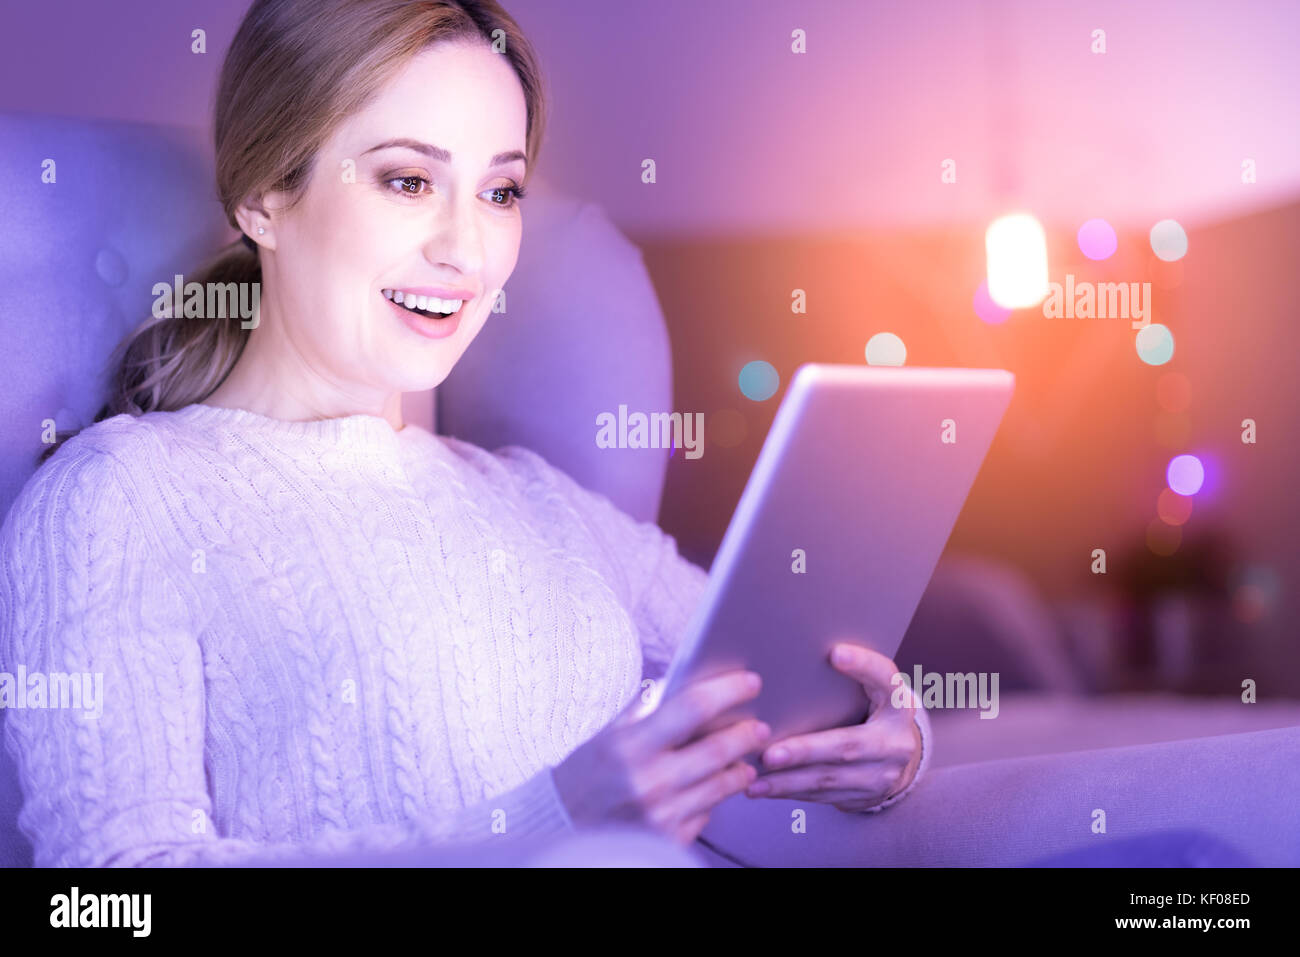 Cheerful woman smiling while looking at her tablet - Stock Image